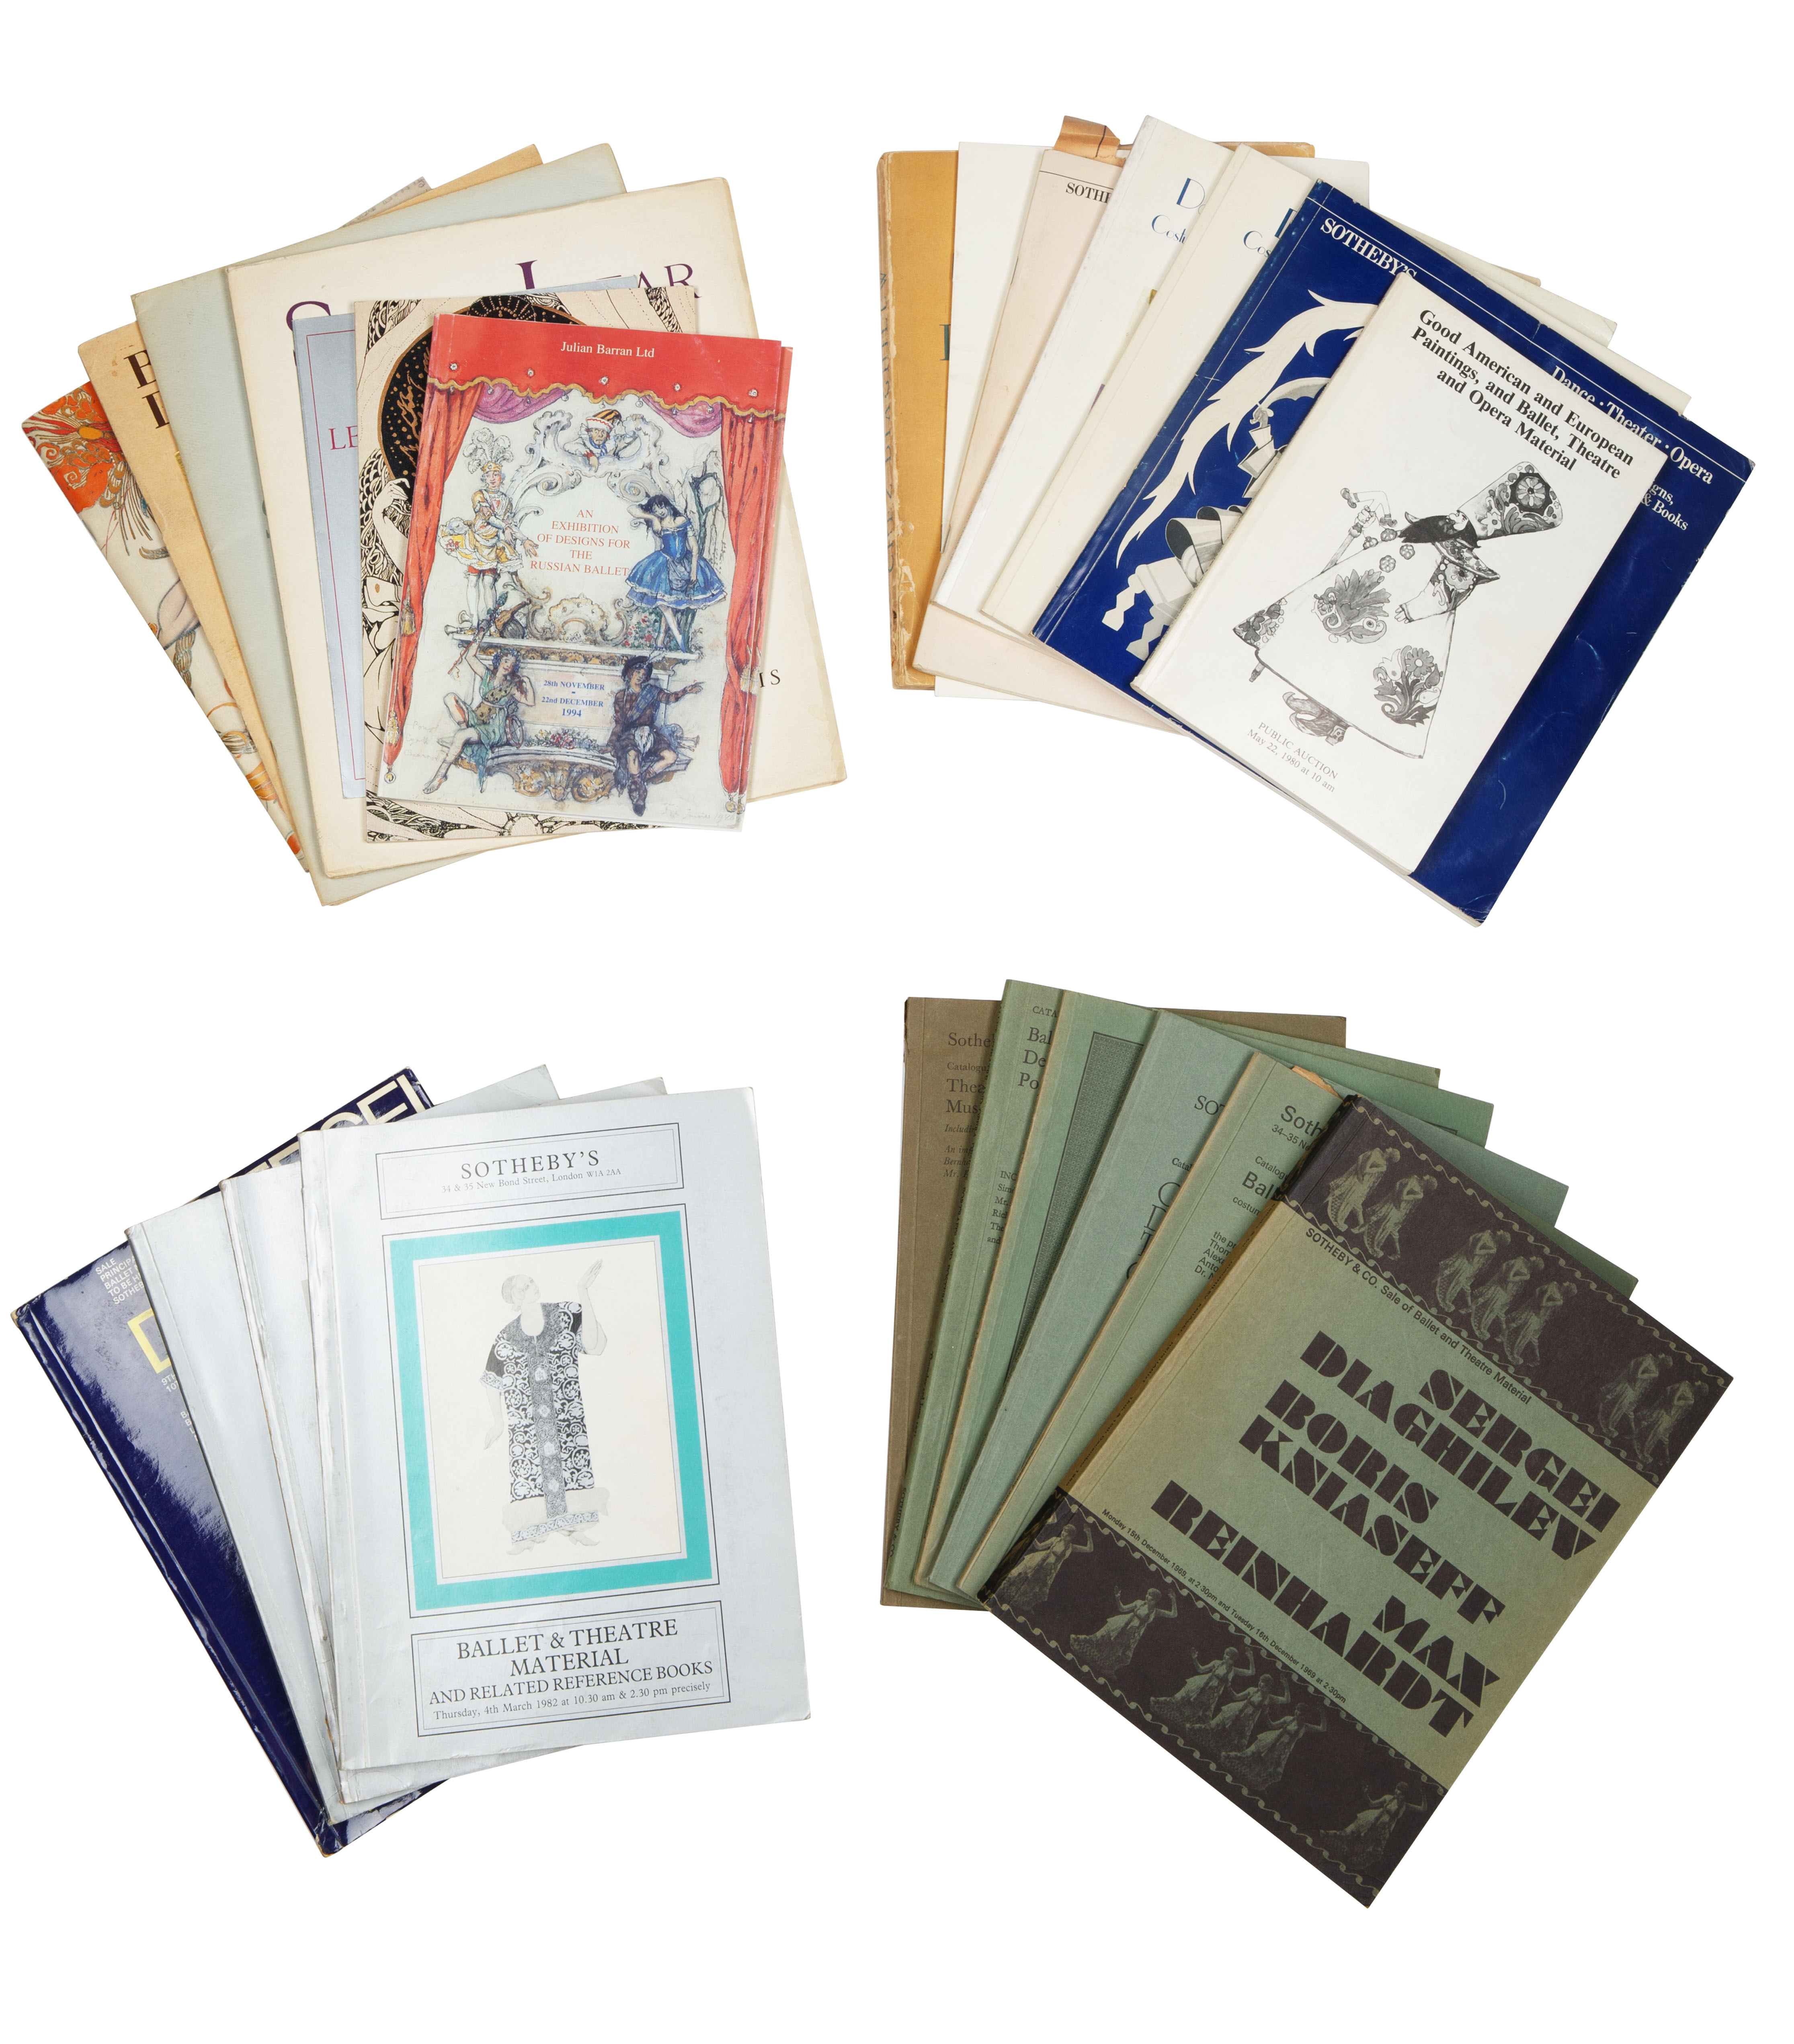 A GROUP OF 46 BALLET RUSSE AUCTION CATALOGUES AND BOOKS - Image 2 of 3